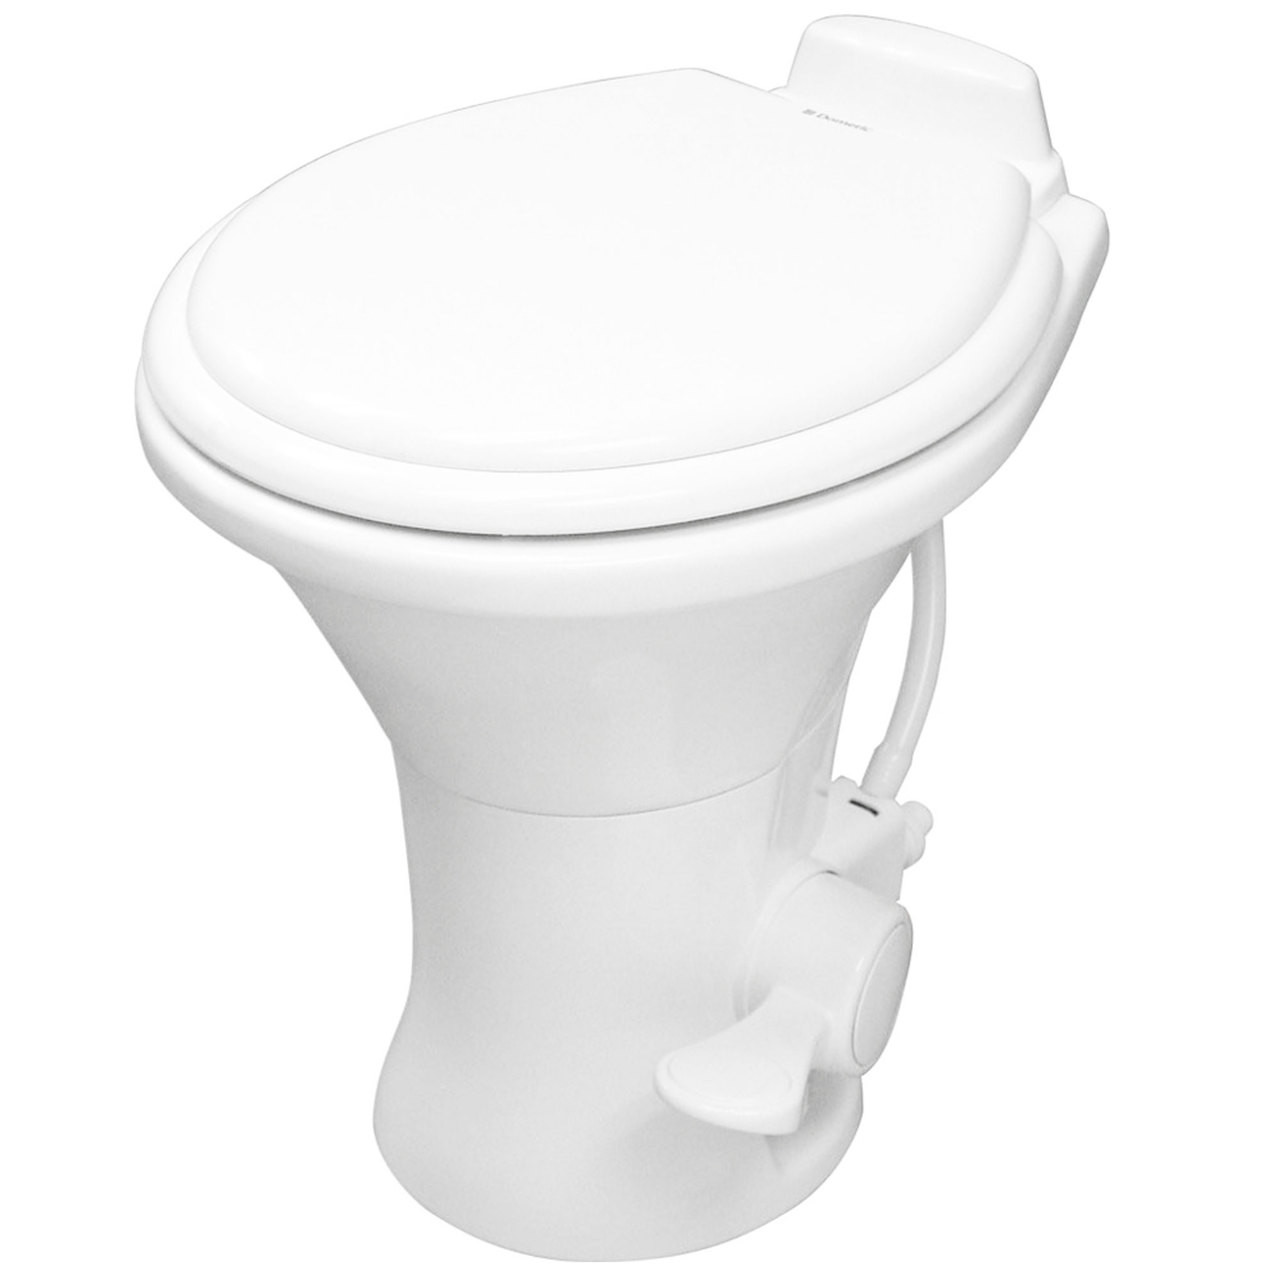 Dometic 310 RV Toilet - RV Parts Nation